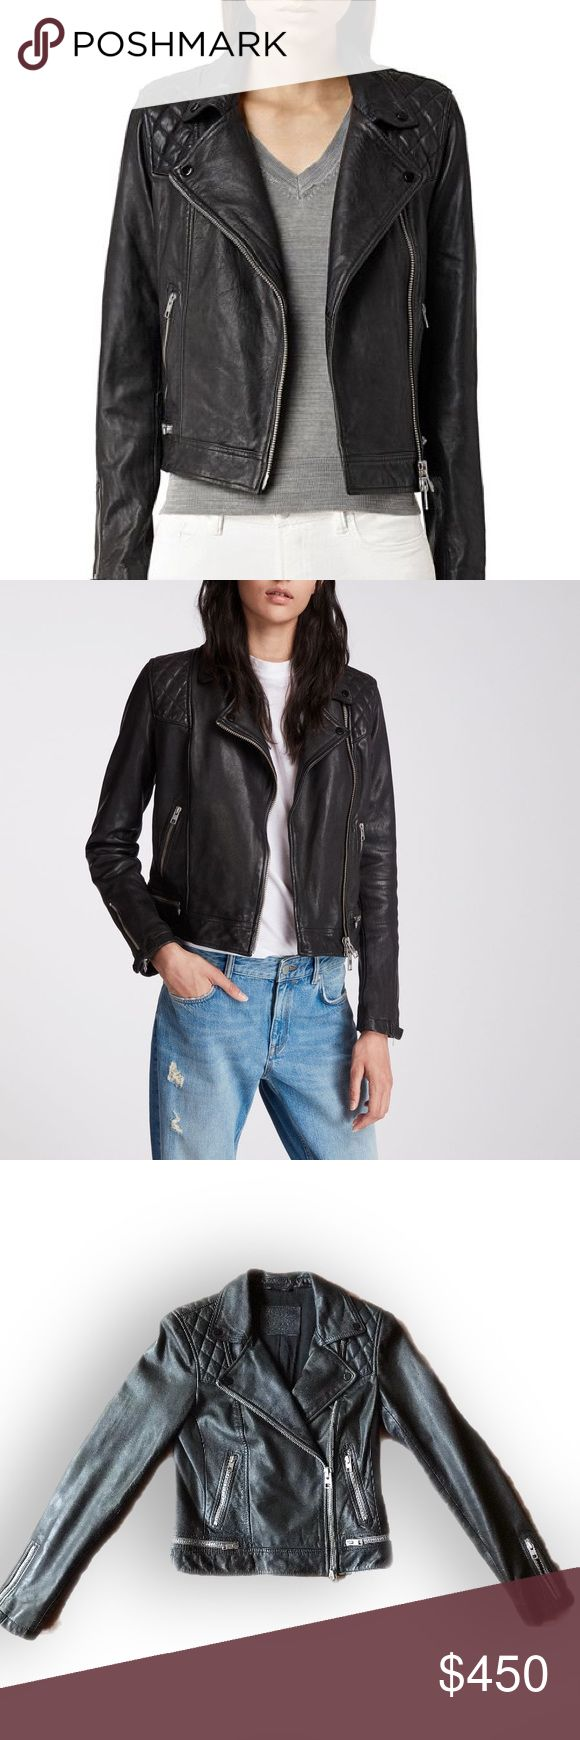 All Saints Conroy Leather Jacket Leather jacket, Clothes